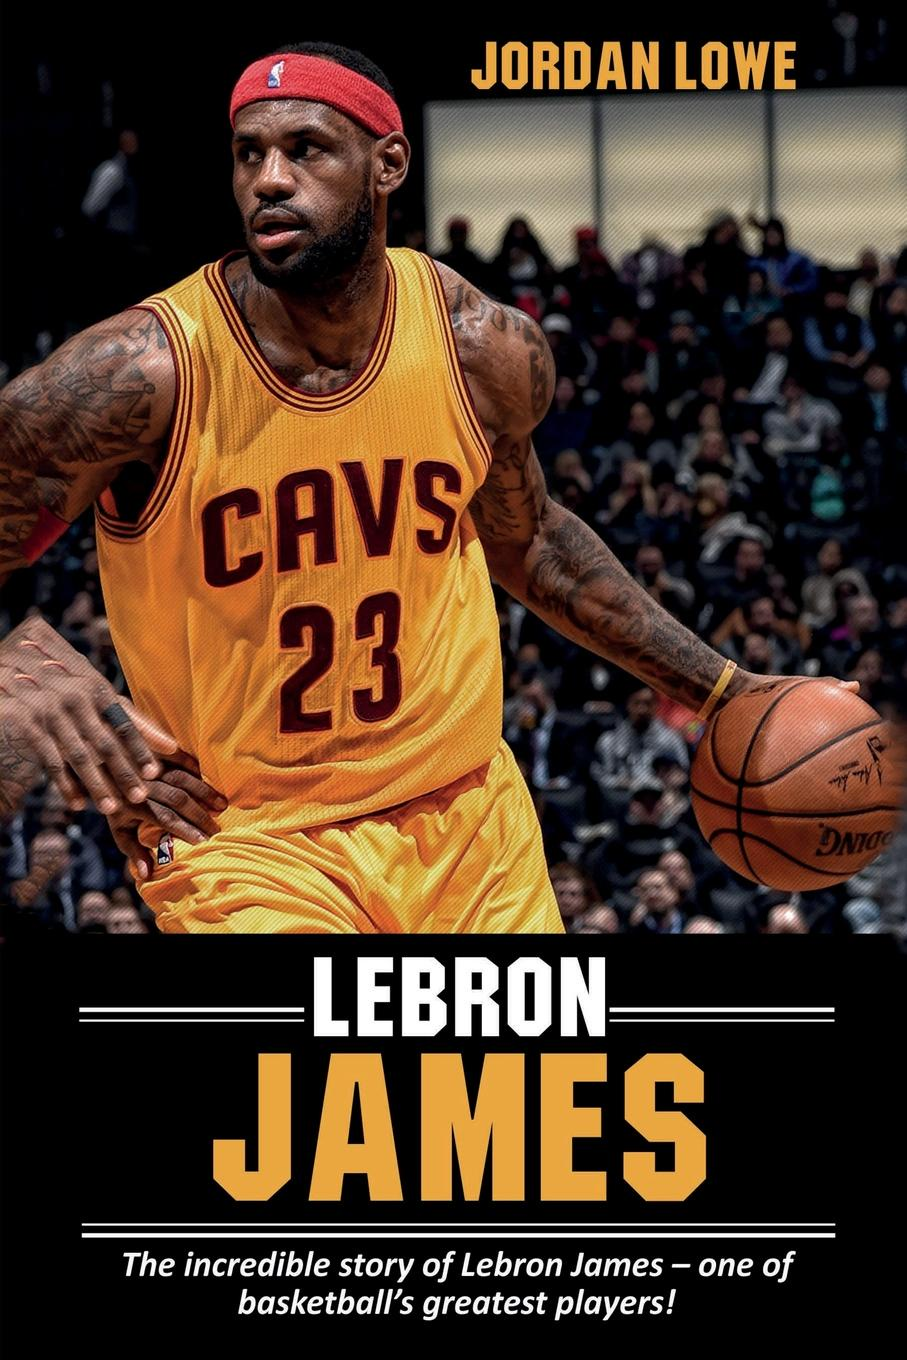 Jordan Lowe LeBron James. The incredible story of LeBron James - one of basketball's greatest players!